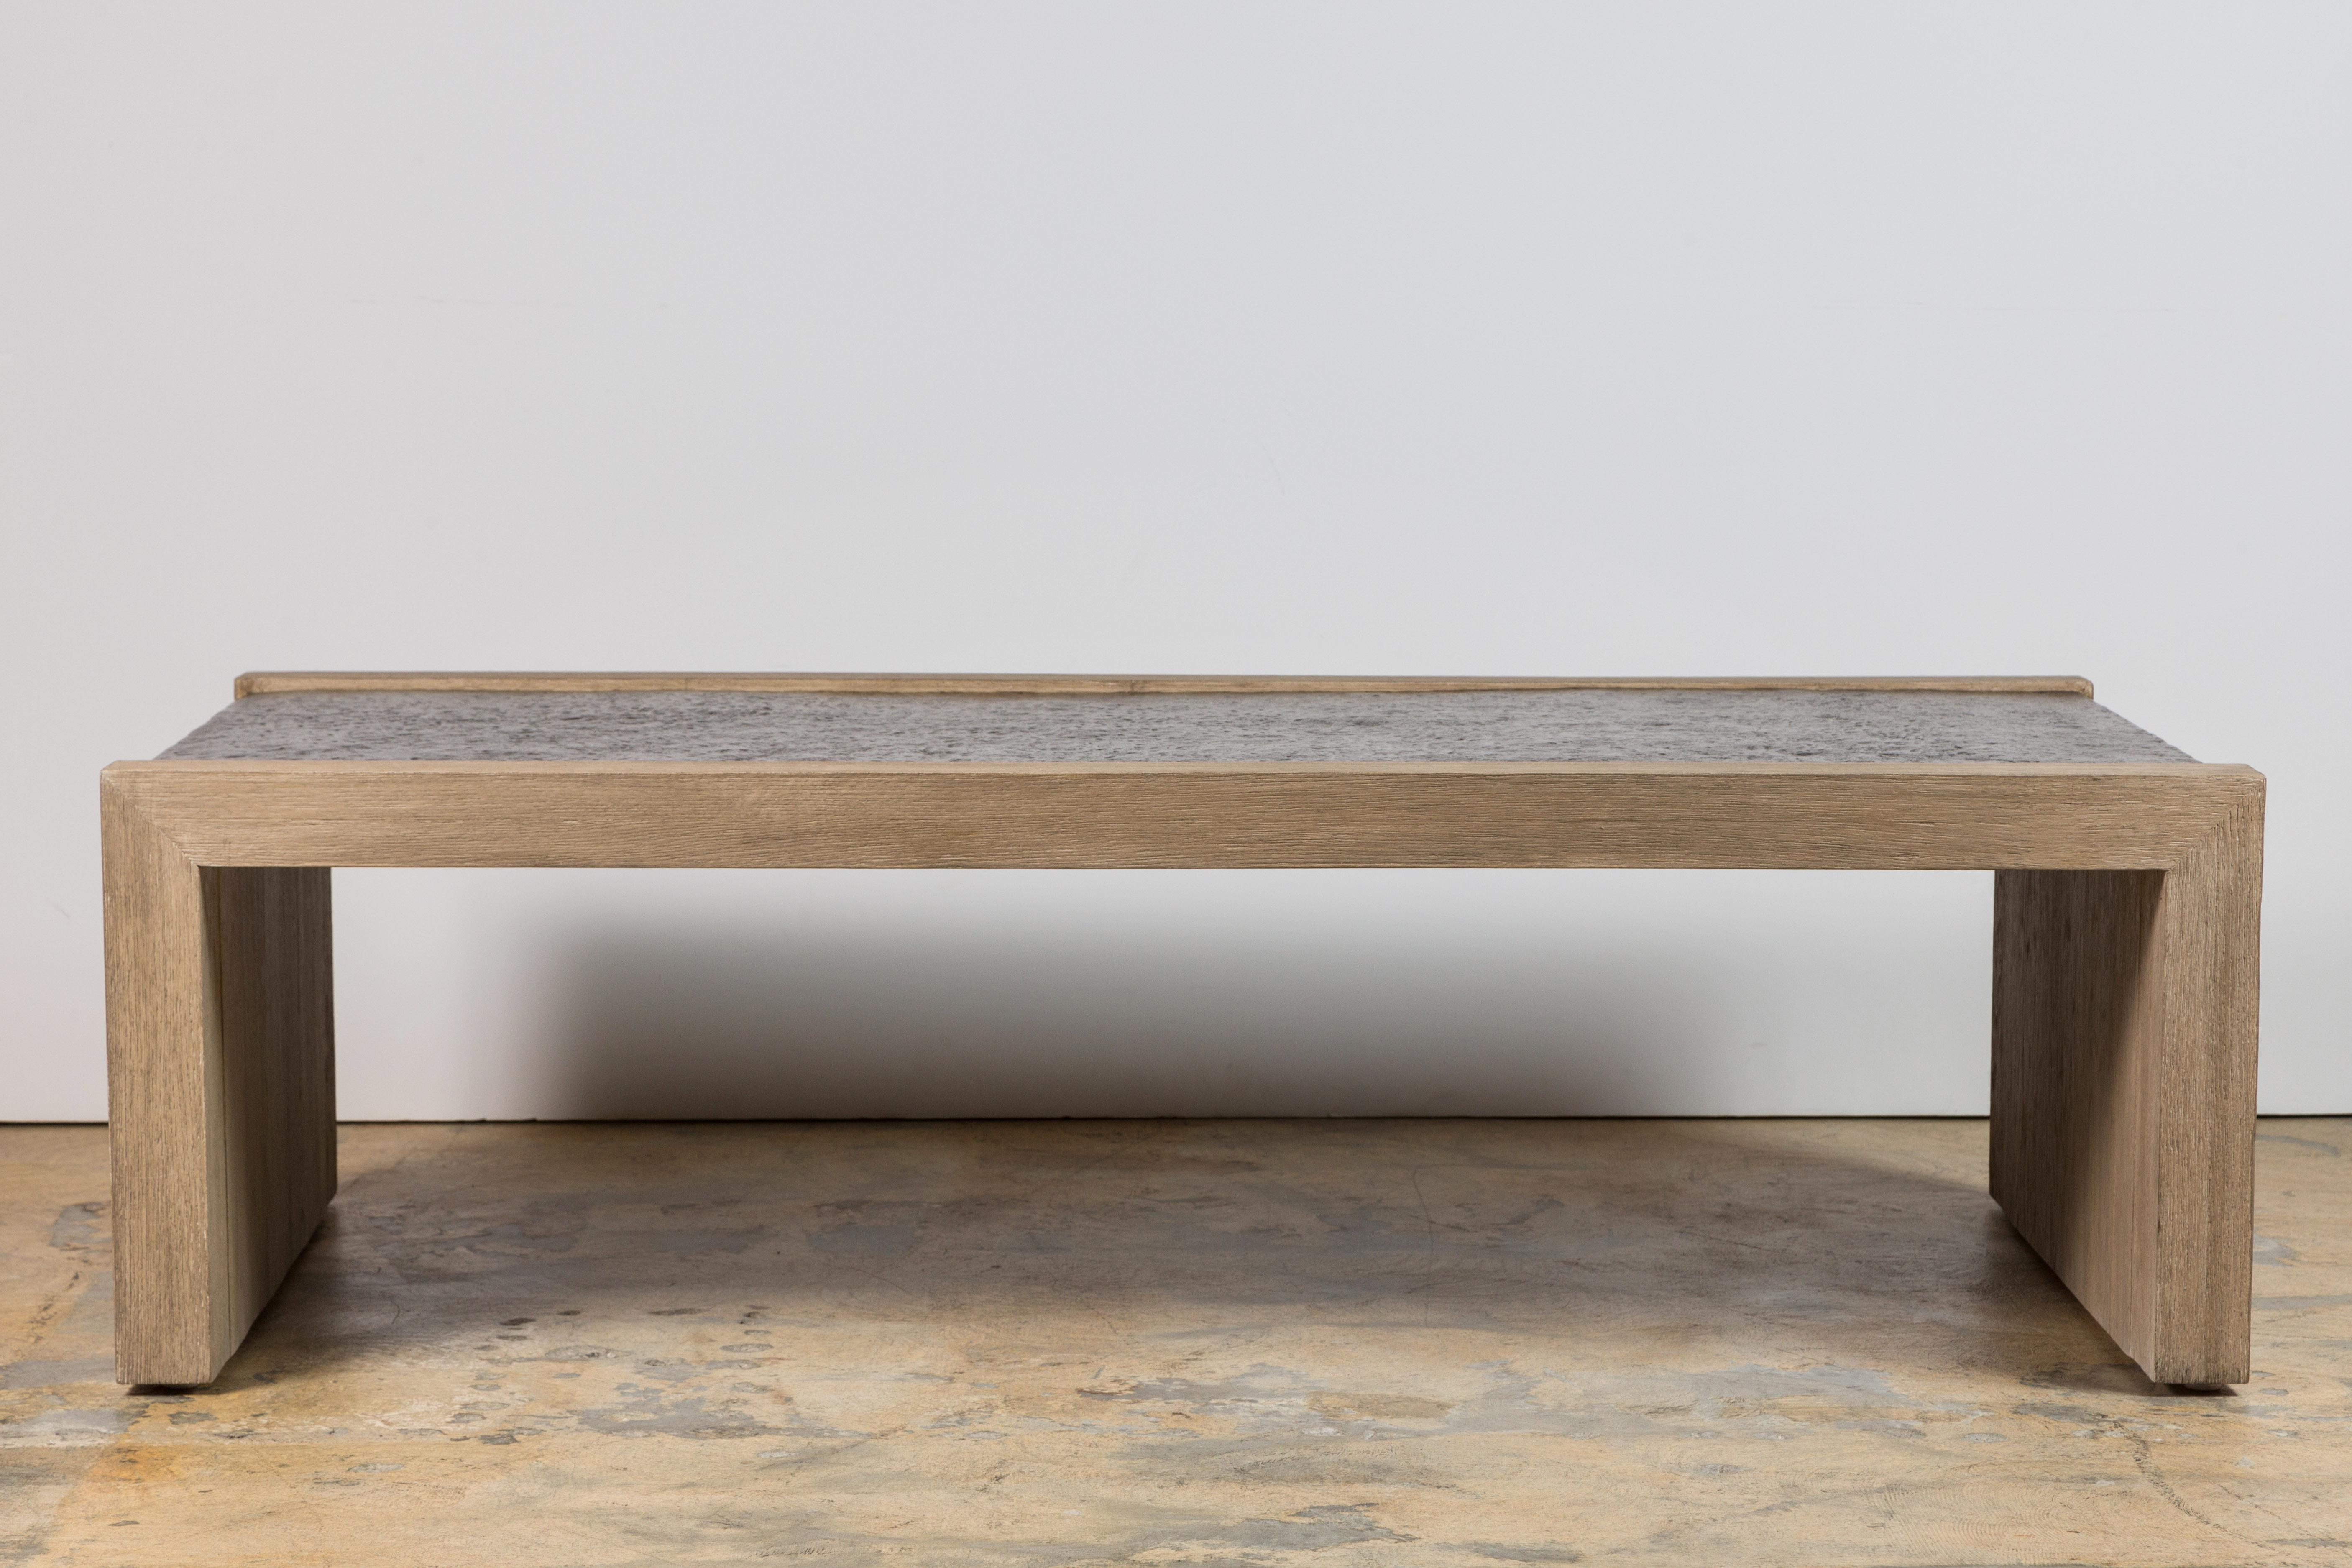 Lovely Paul Marra Rustic Modern Waterfall Table   Image 9 Of 10